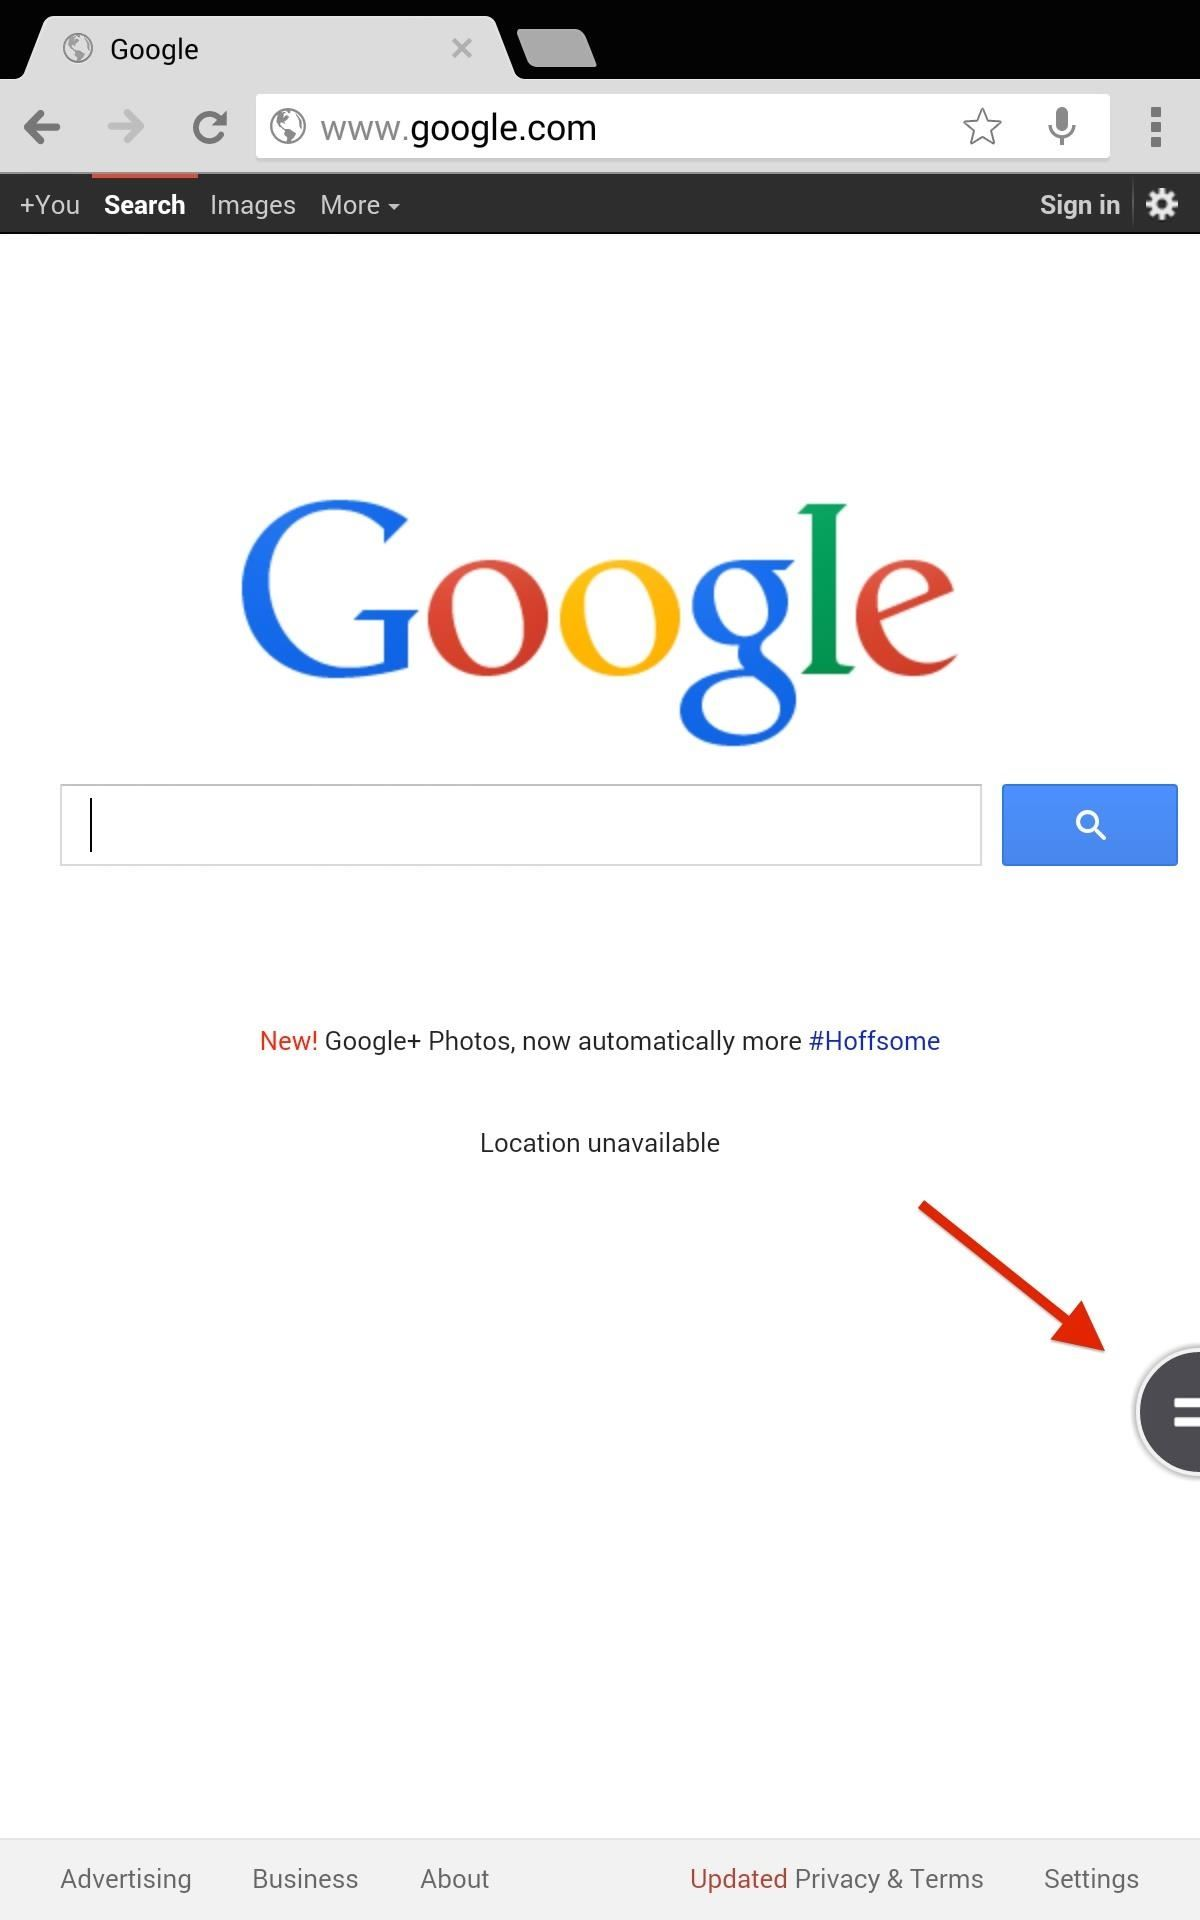 How to Perform Quick Calculations & Google Searches on the Fly